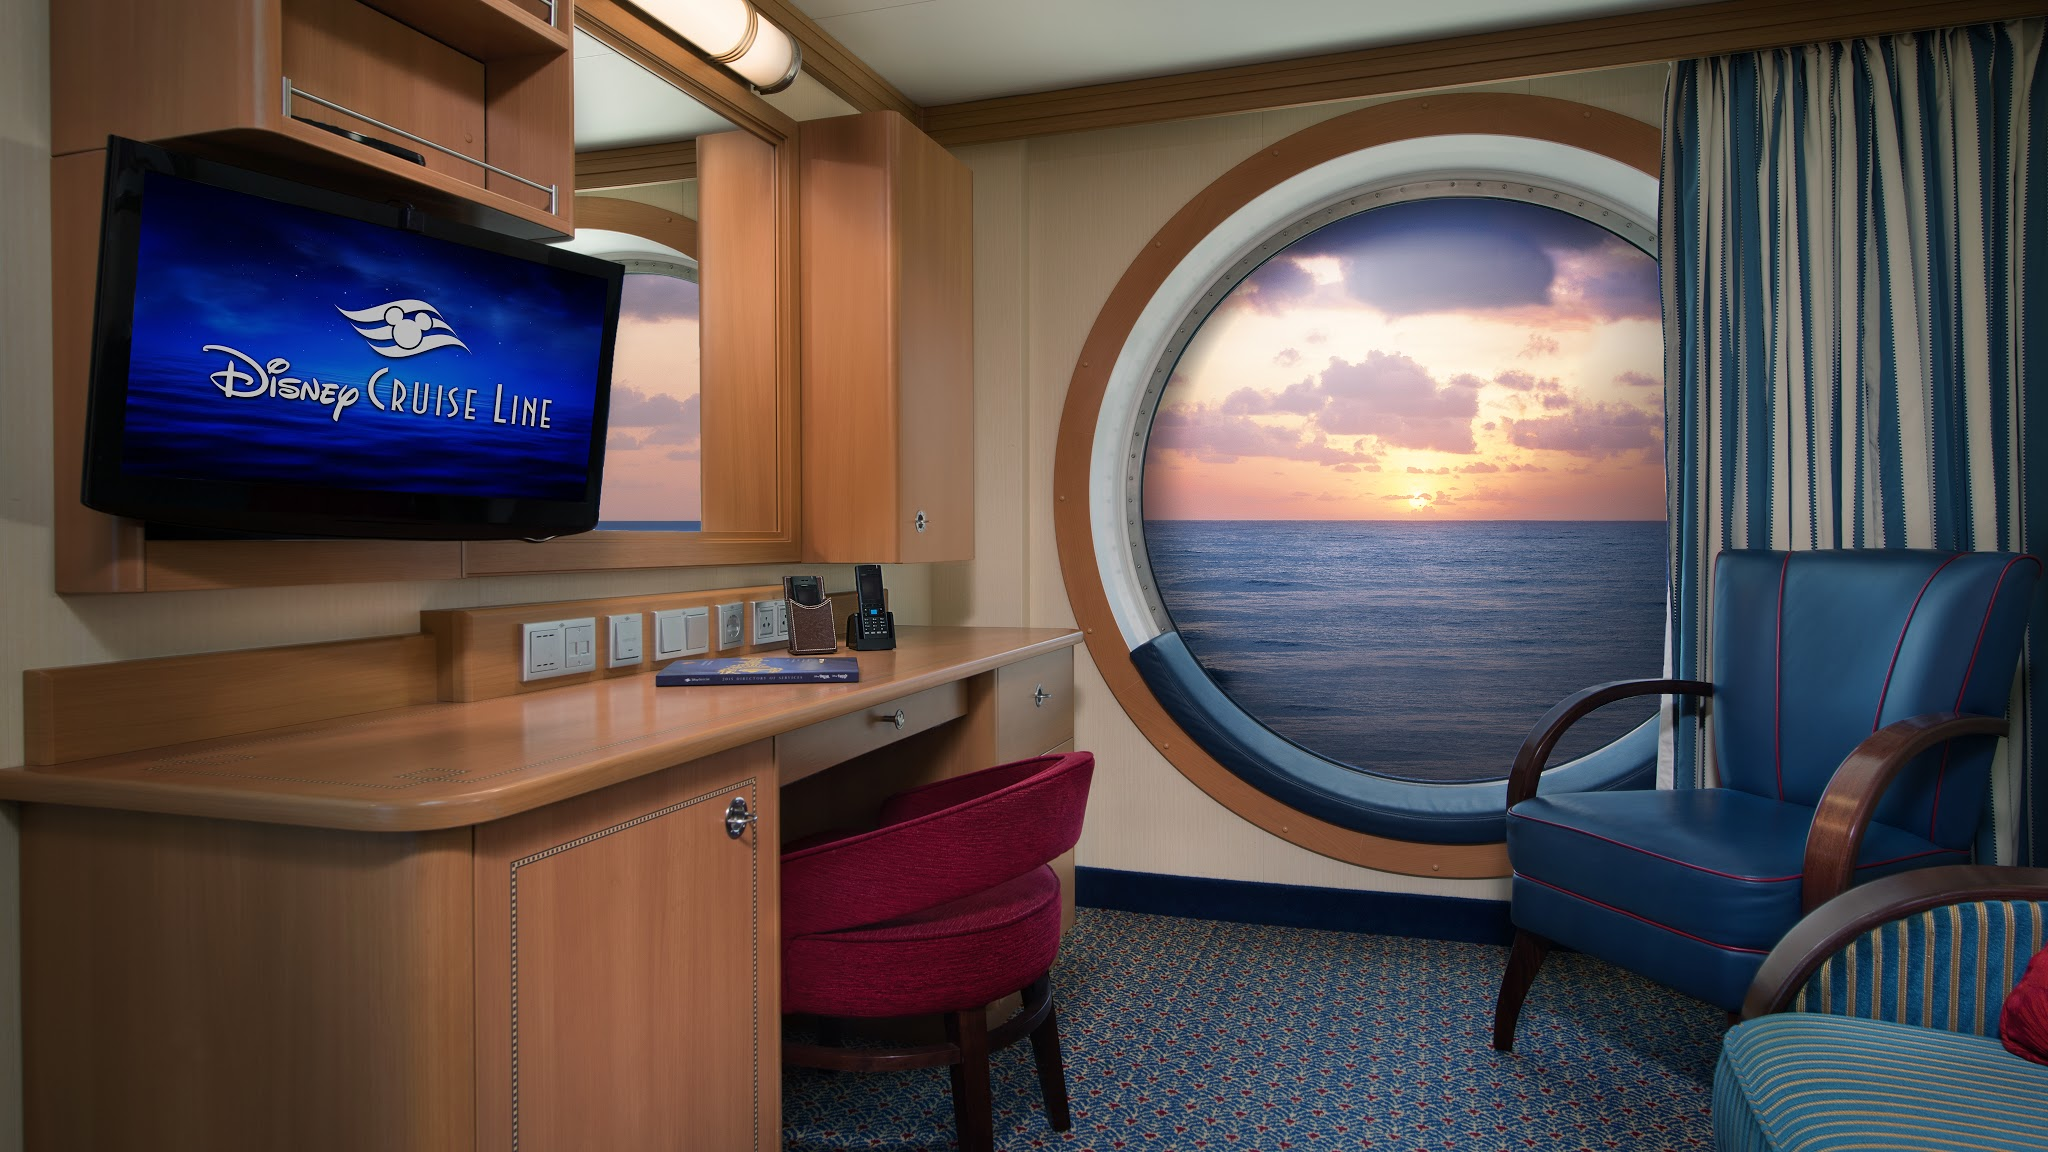 We have 25 cemedomino.ml Coupon Codes as of November Grab a free coupons and save money. The Latest Deal is Rates From $90/night @ Disney Cruise Line Coupons & Codes.